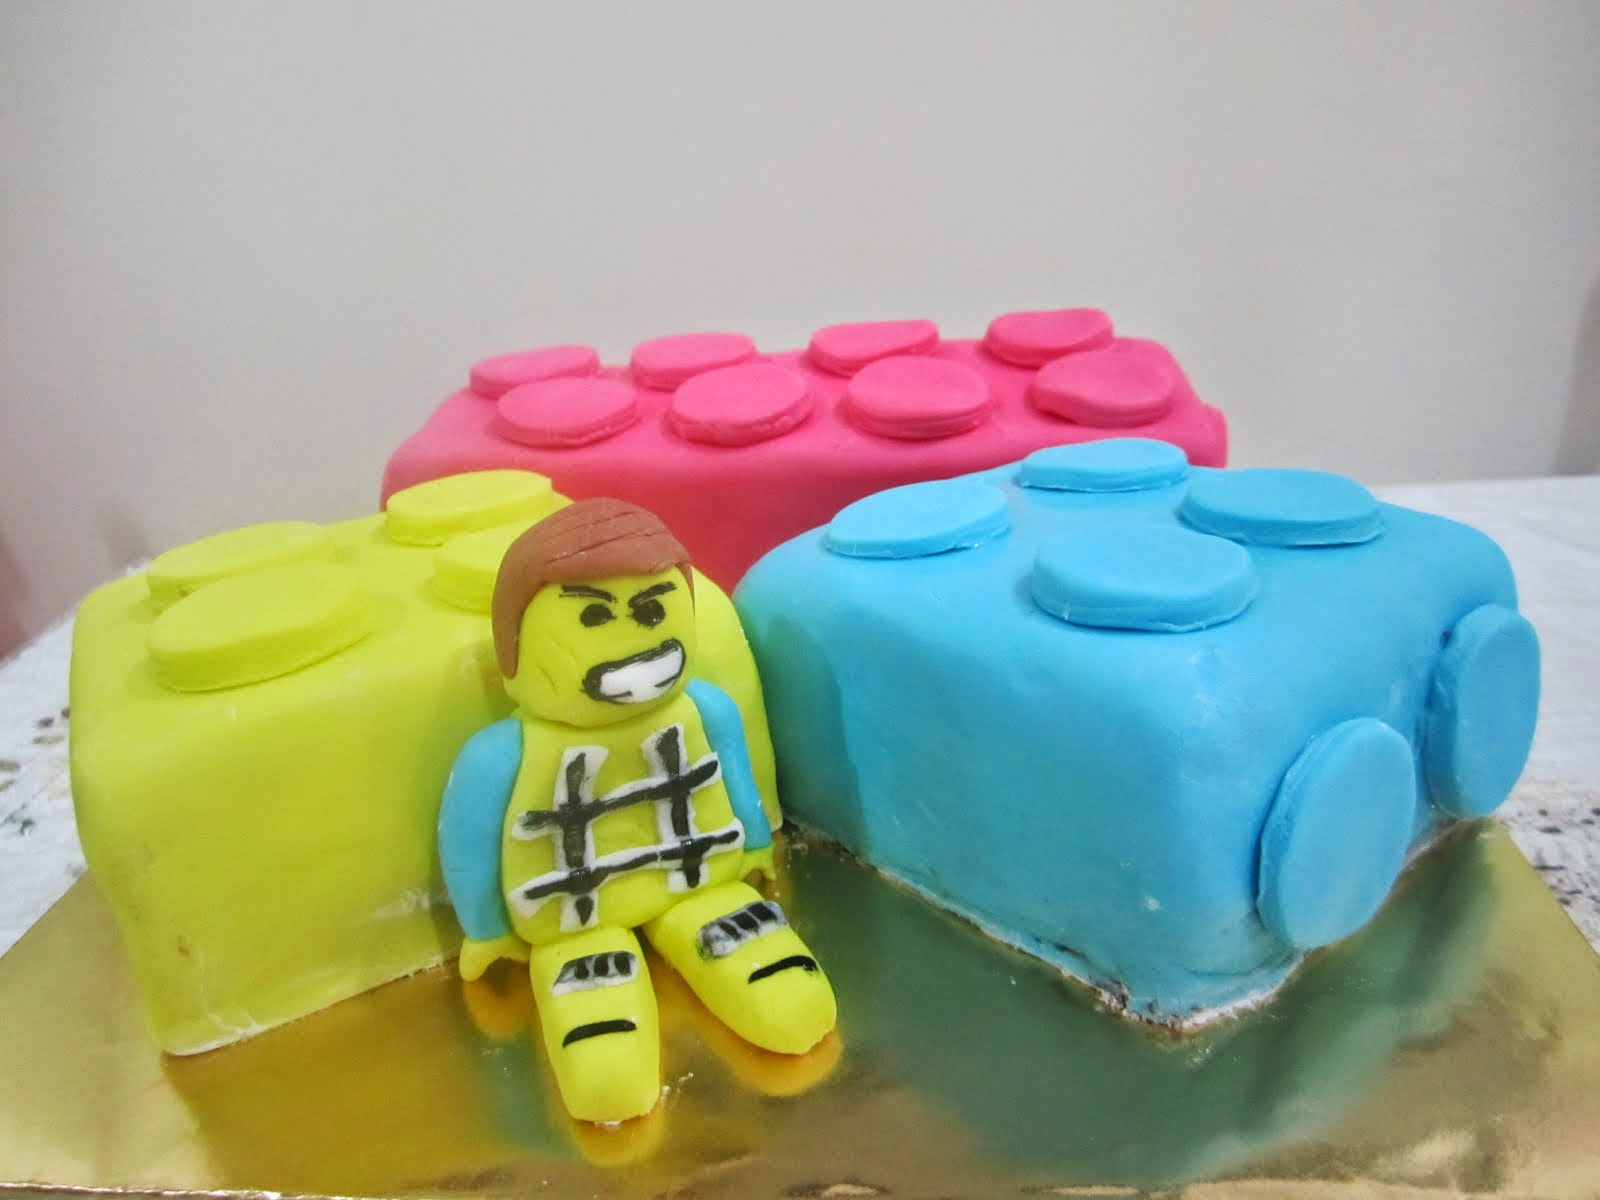 Lego Cake for Birthday